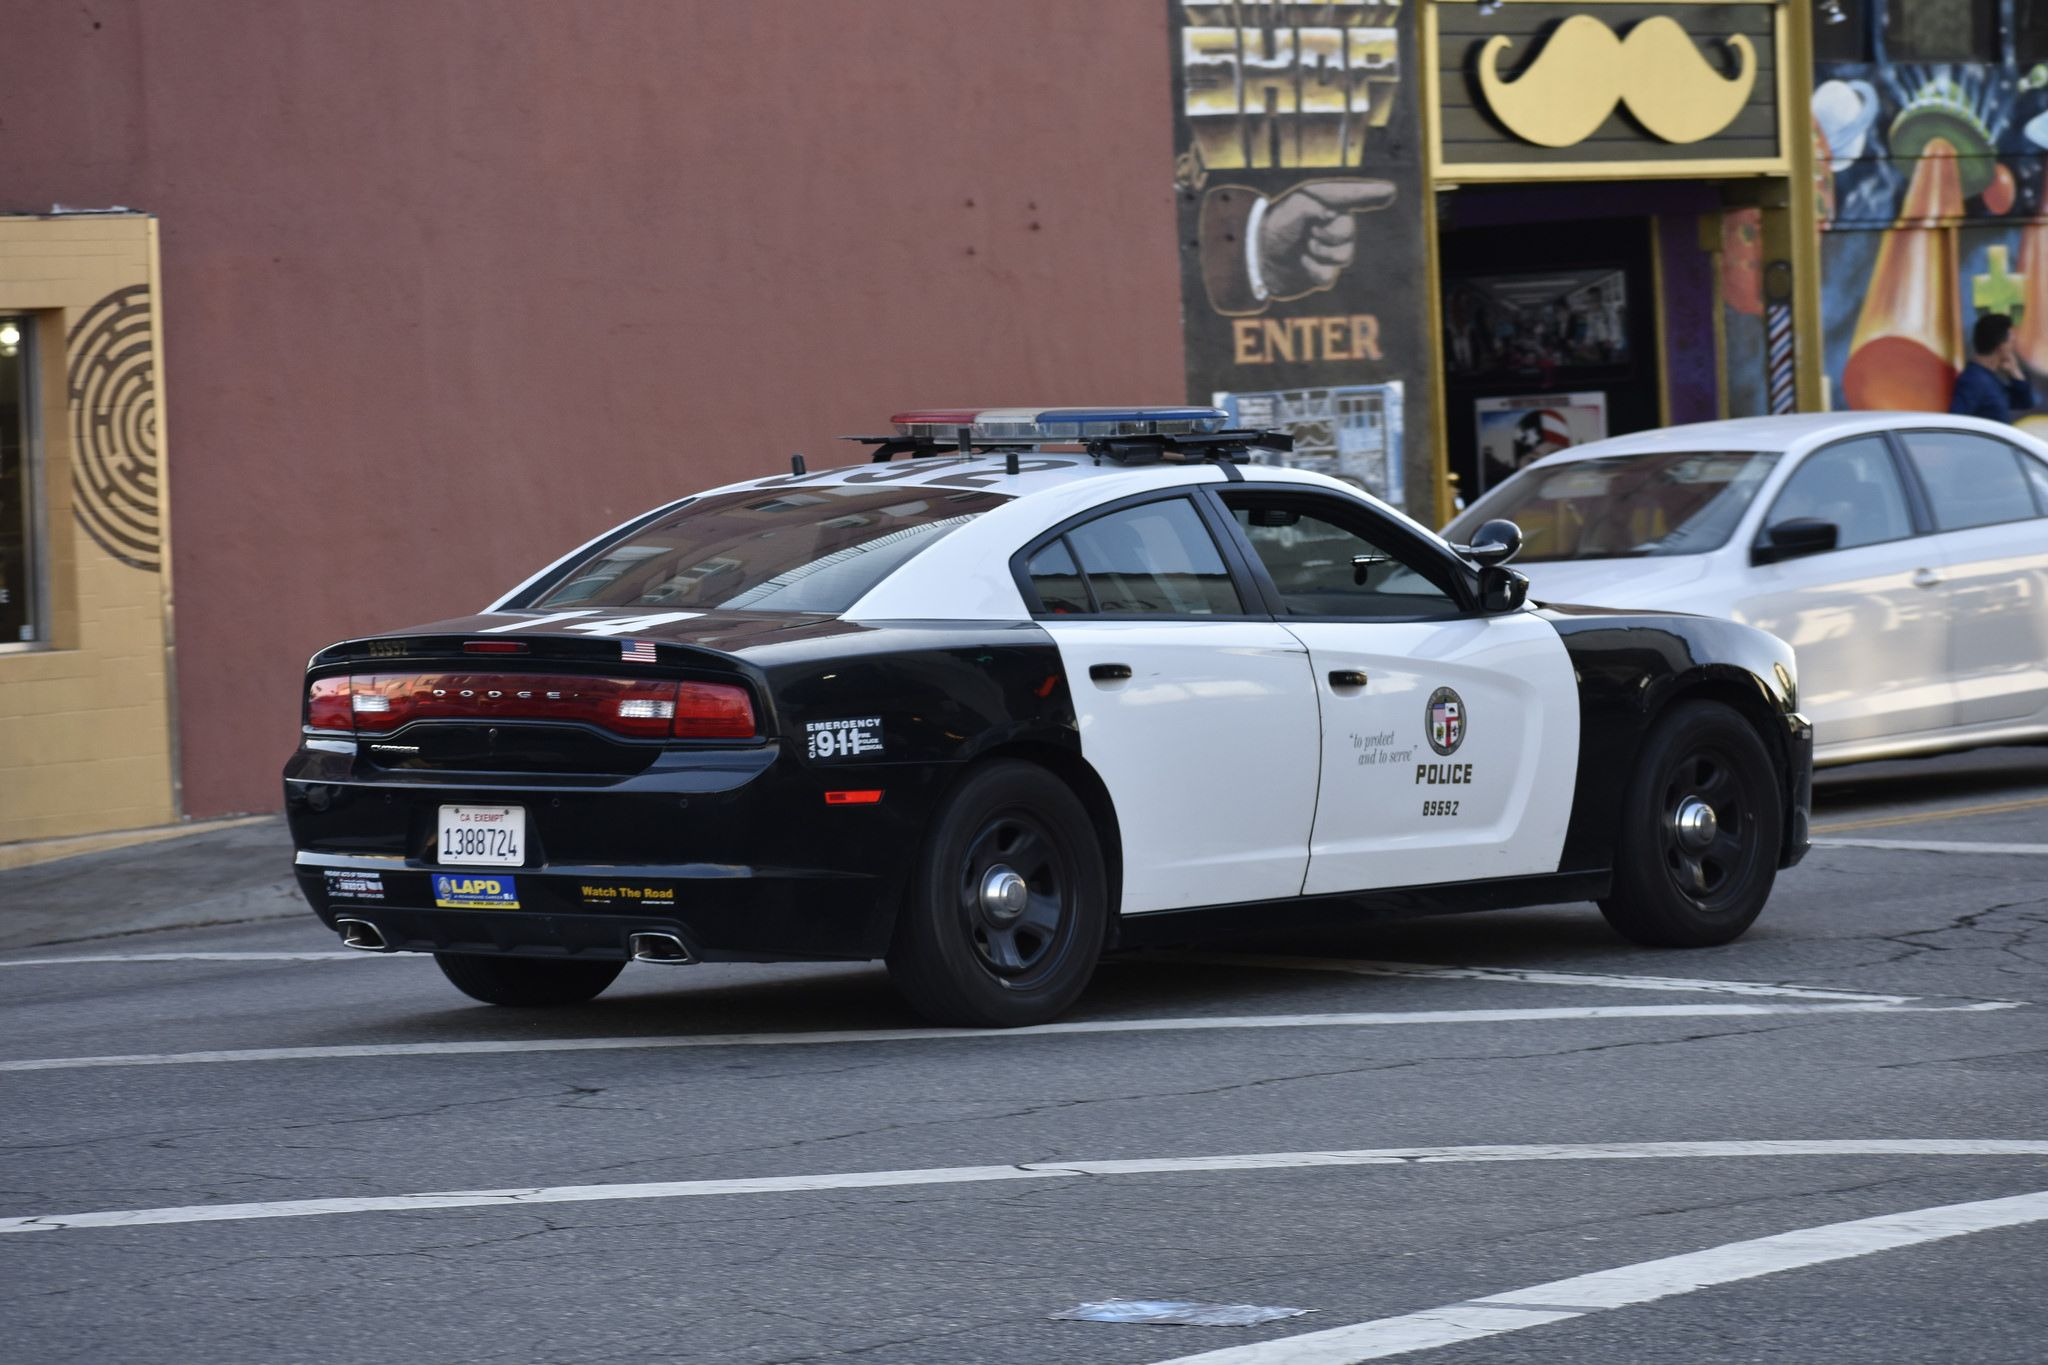 2013 LAPD Dodge Charger | Dodge charger, Police cars, Lapd